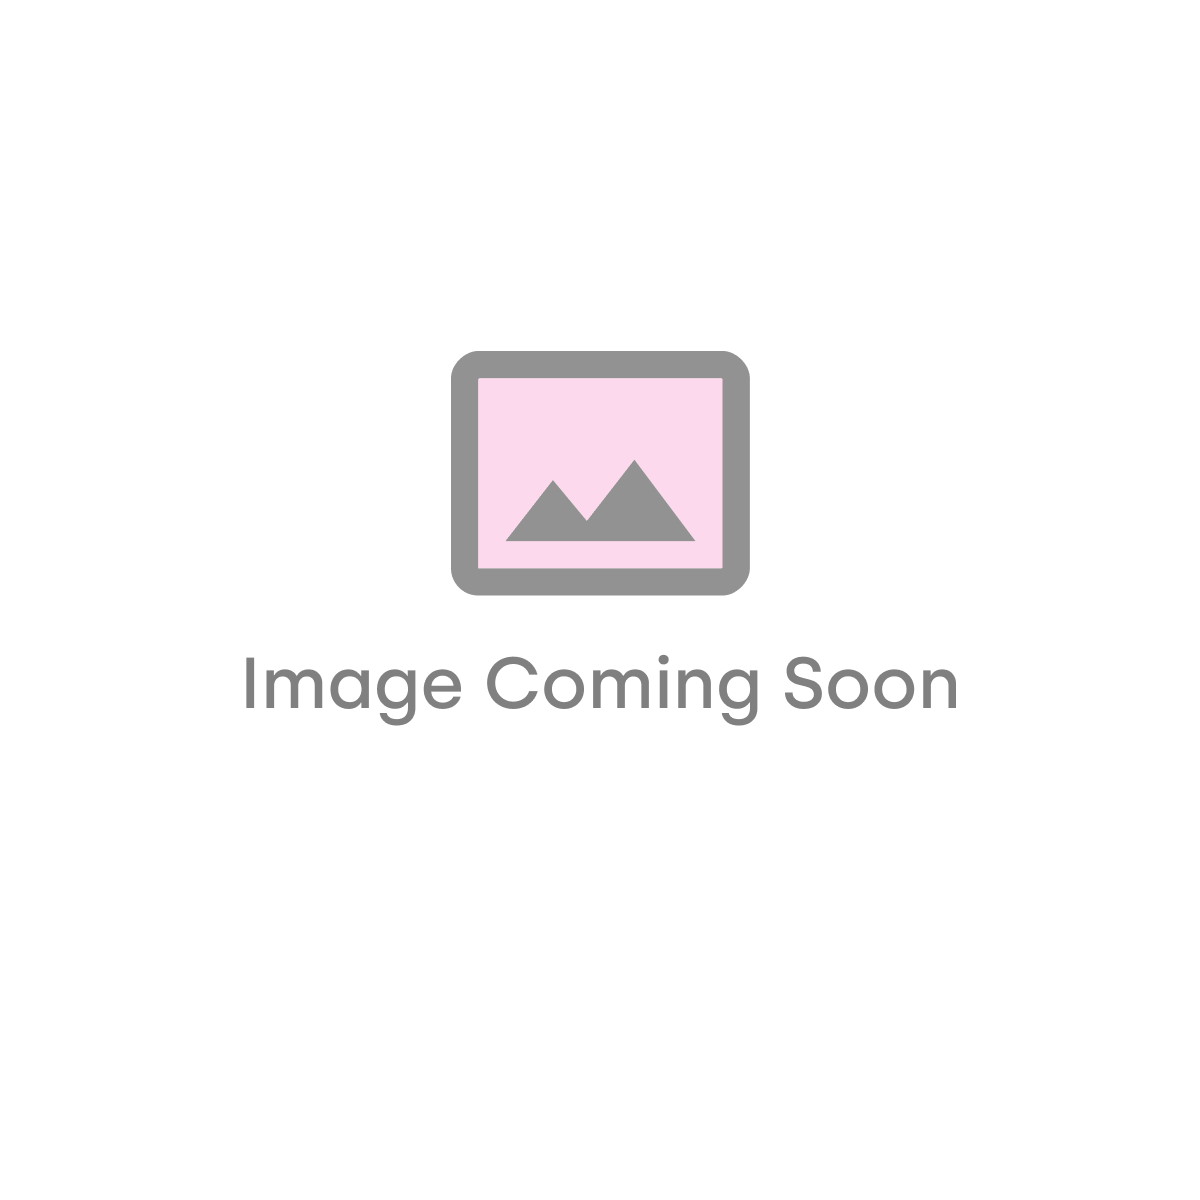 Moods Bathrooms to Love Solarna Supercast L-Shape 1700 x 700mm Shower Bath inc. Screen - Left Hand (12237)